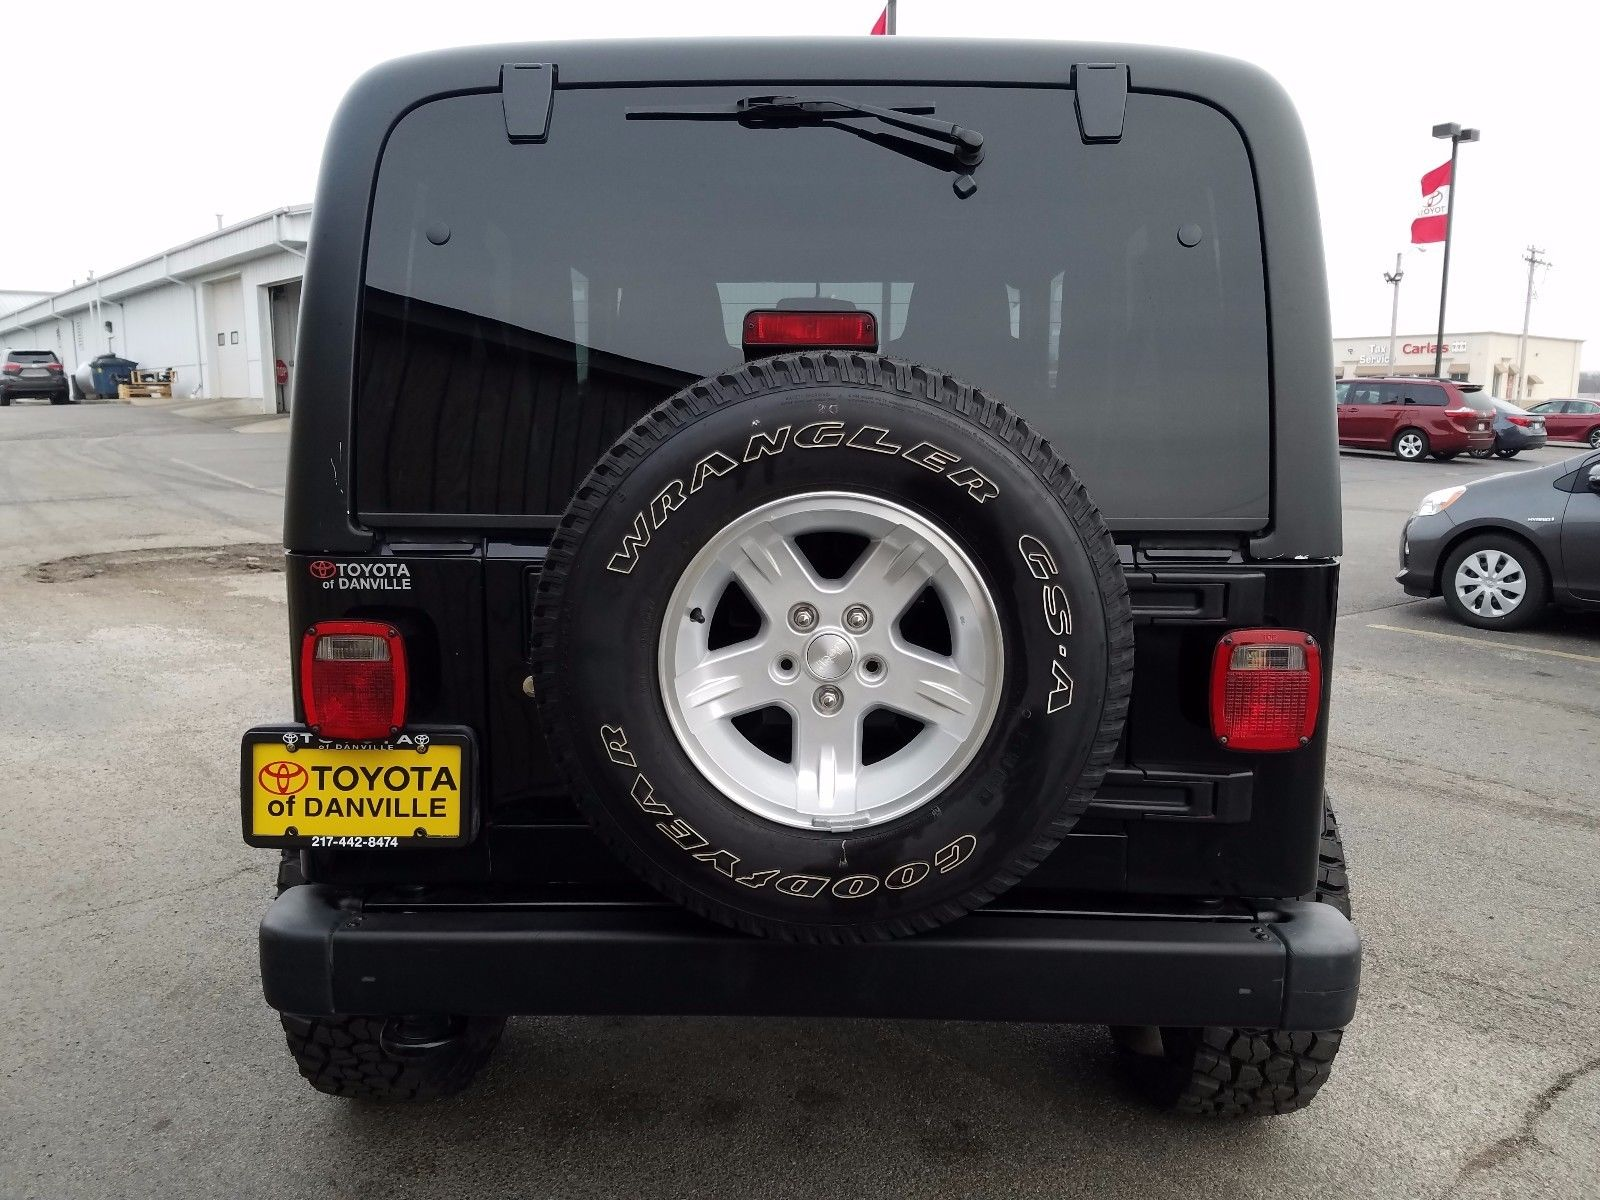 awesome 2005 jeep wrangler unlimited 2005 jeep wrangler unlimited 2 door hard top lifted wheel. Black Bedroom Furniture Sets. Home Design Ideas